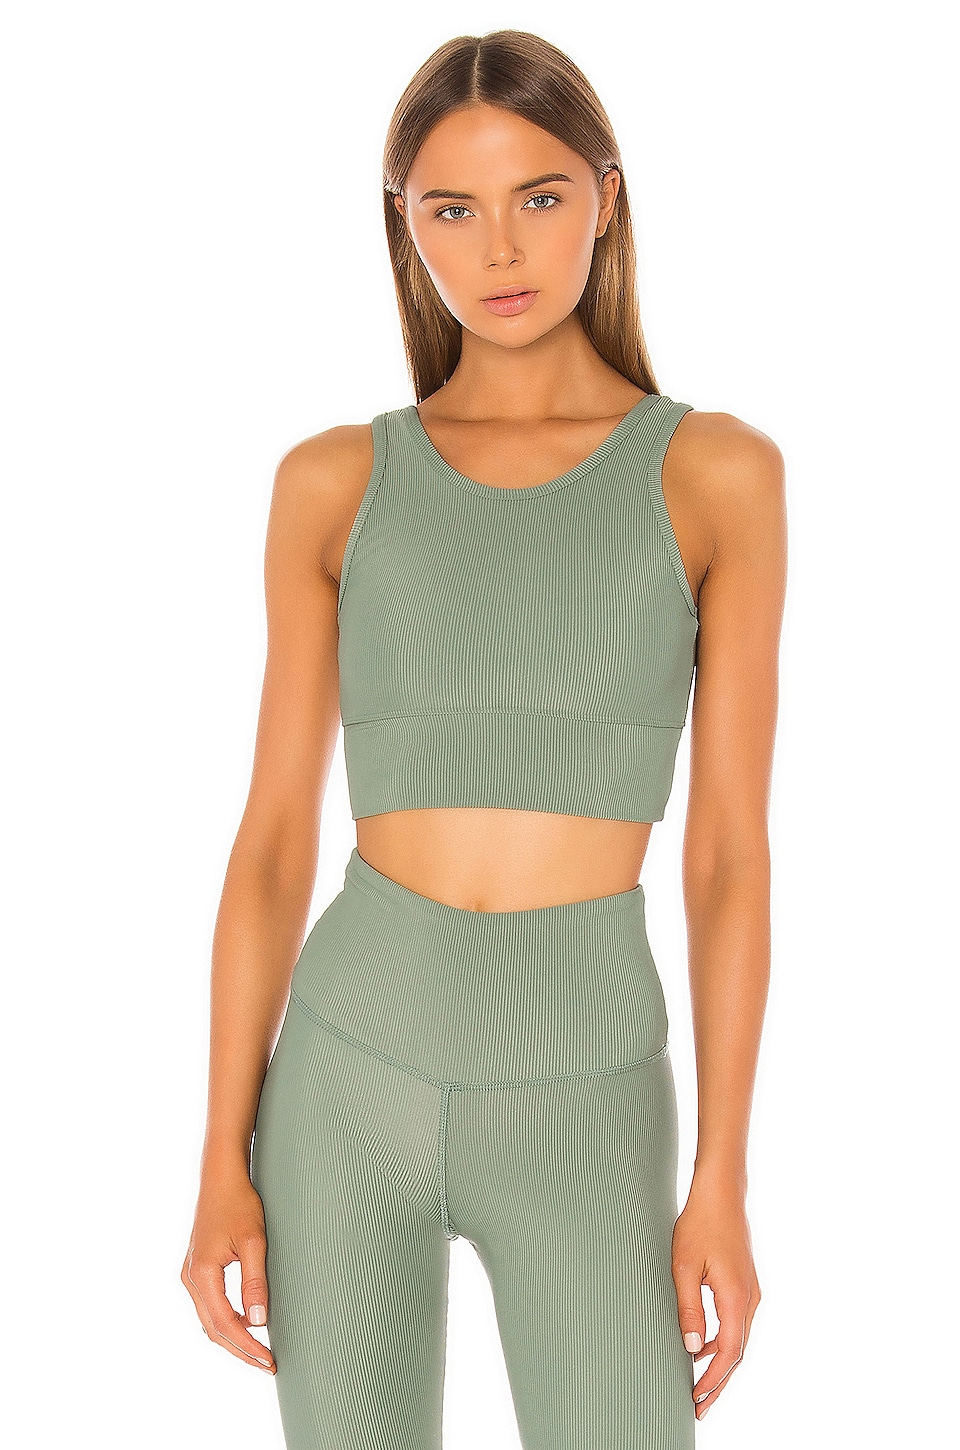 STRUT-THIS Piper Bra in Sage Green Rib